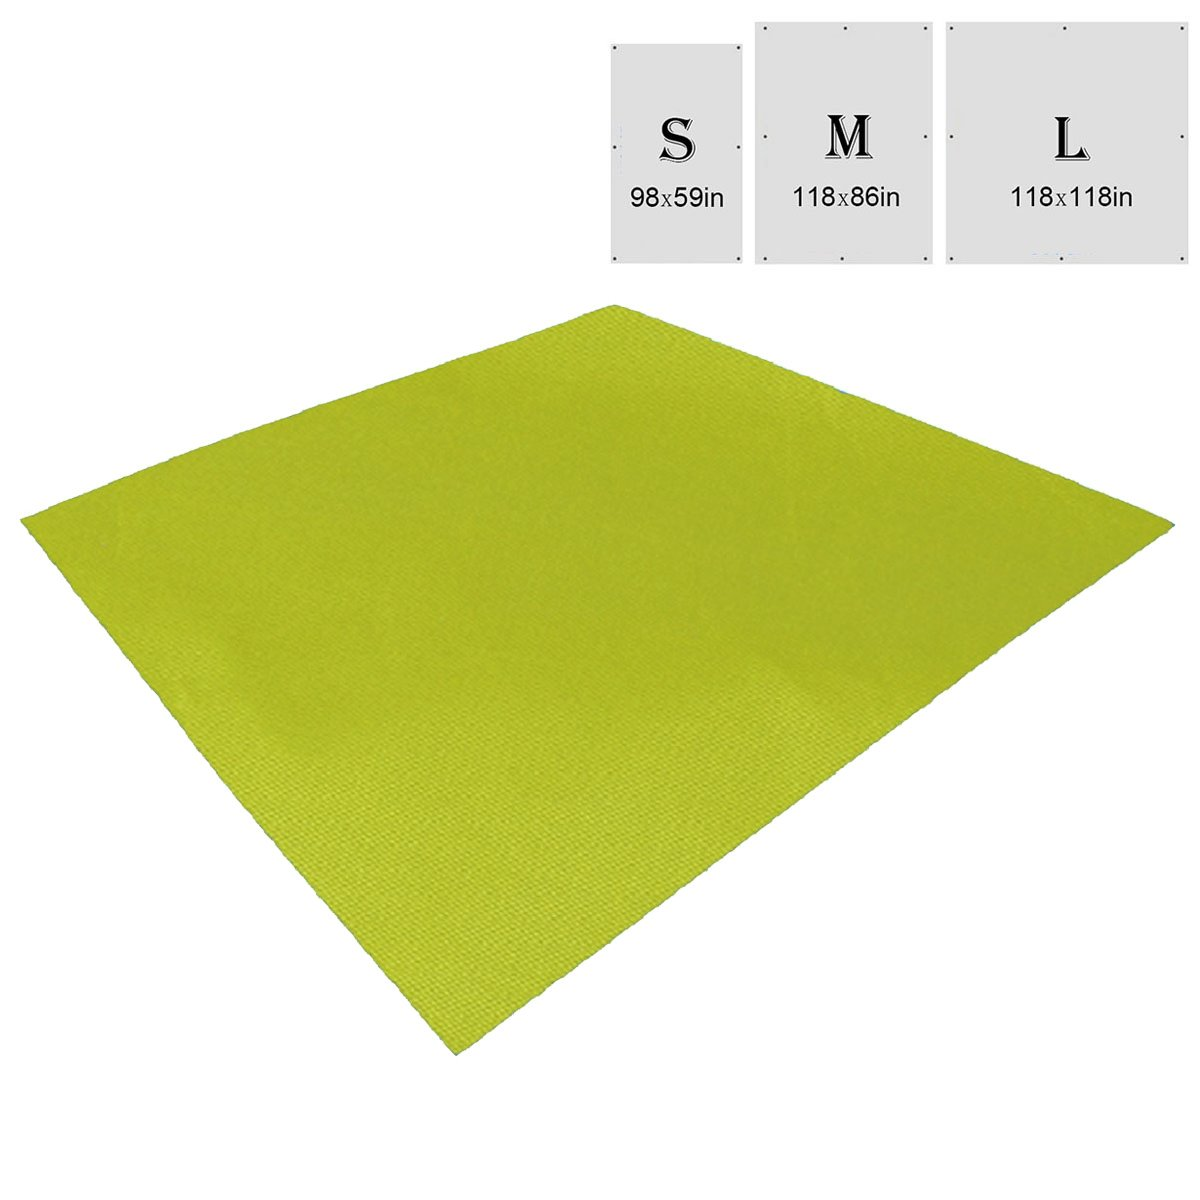 TRIWONDER Waterproof Hammock Rain Fly Tent Tarp Footprint Camping Shelter Ground Cloth Sunshade Mat for Outdoor Hiking Beach Picnic (Green, L - 118 x 118in) by TRIWONDER